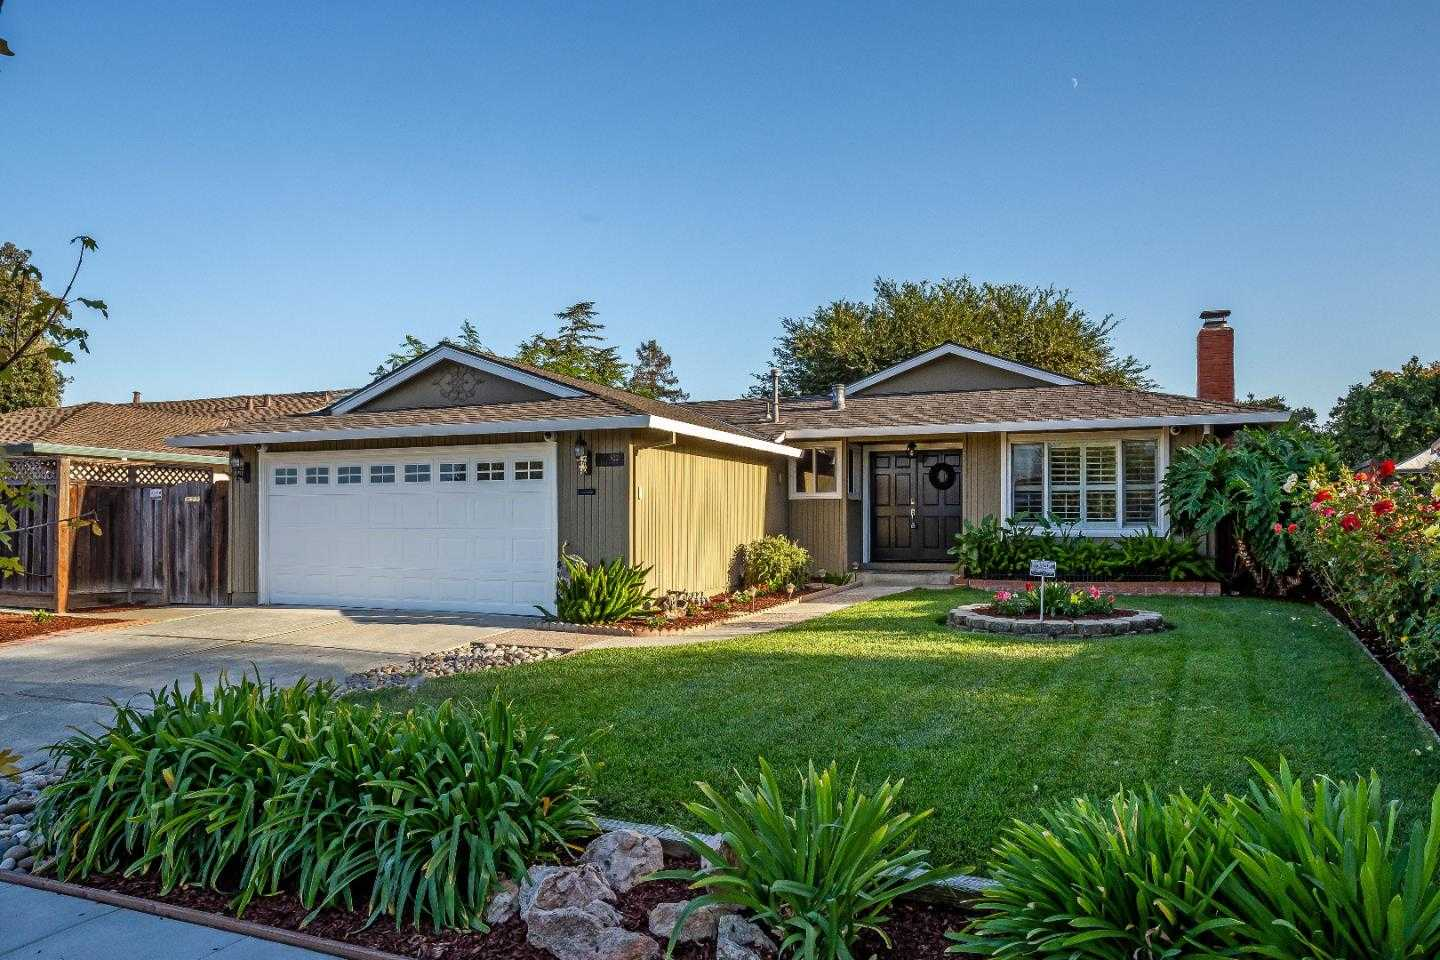 $968,000 - 3Br/2Ba -  for Sale in San Jose